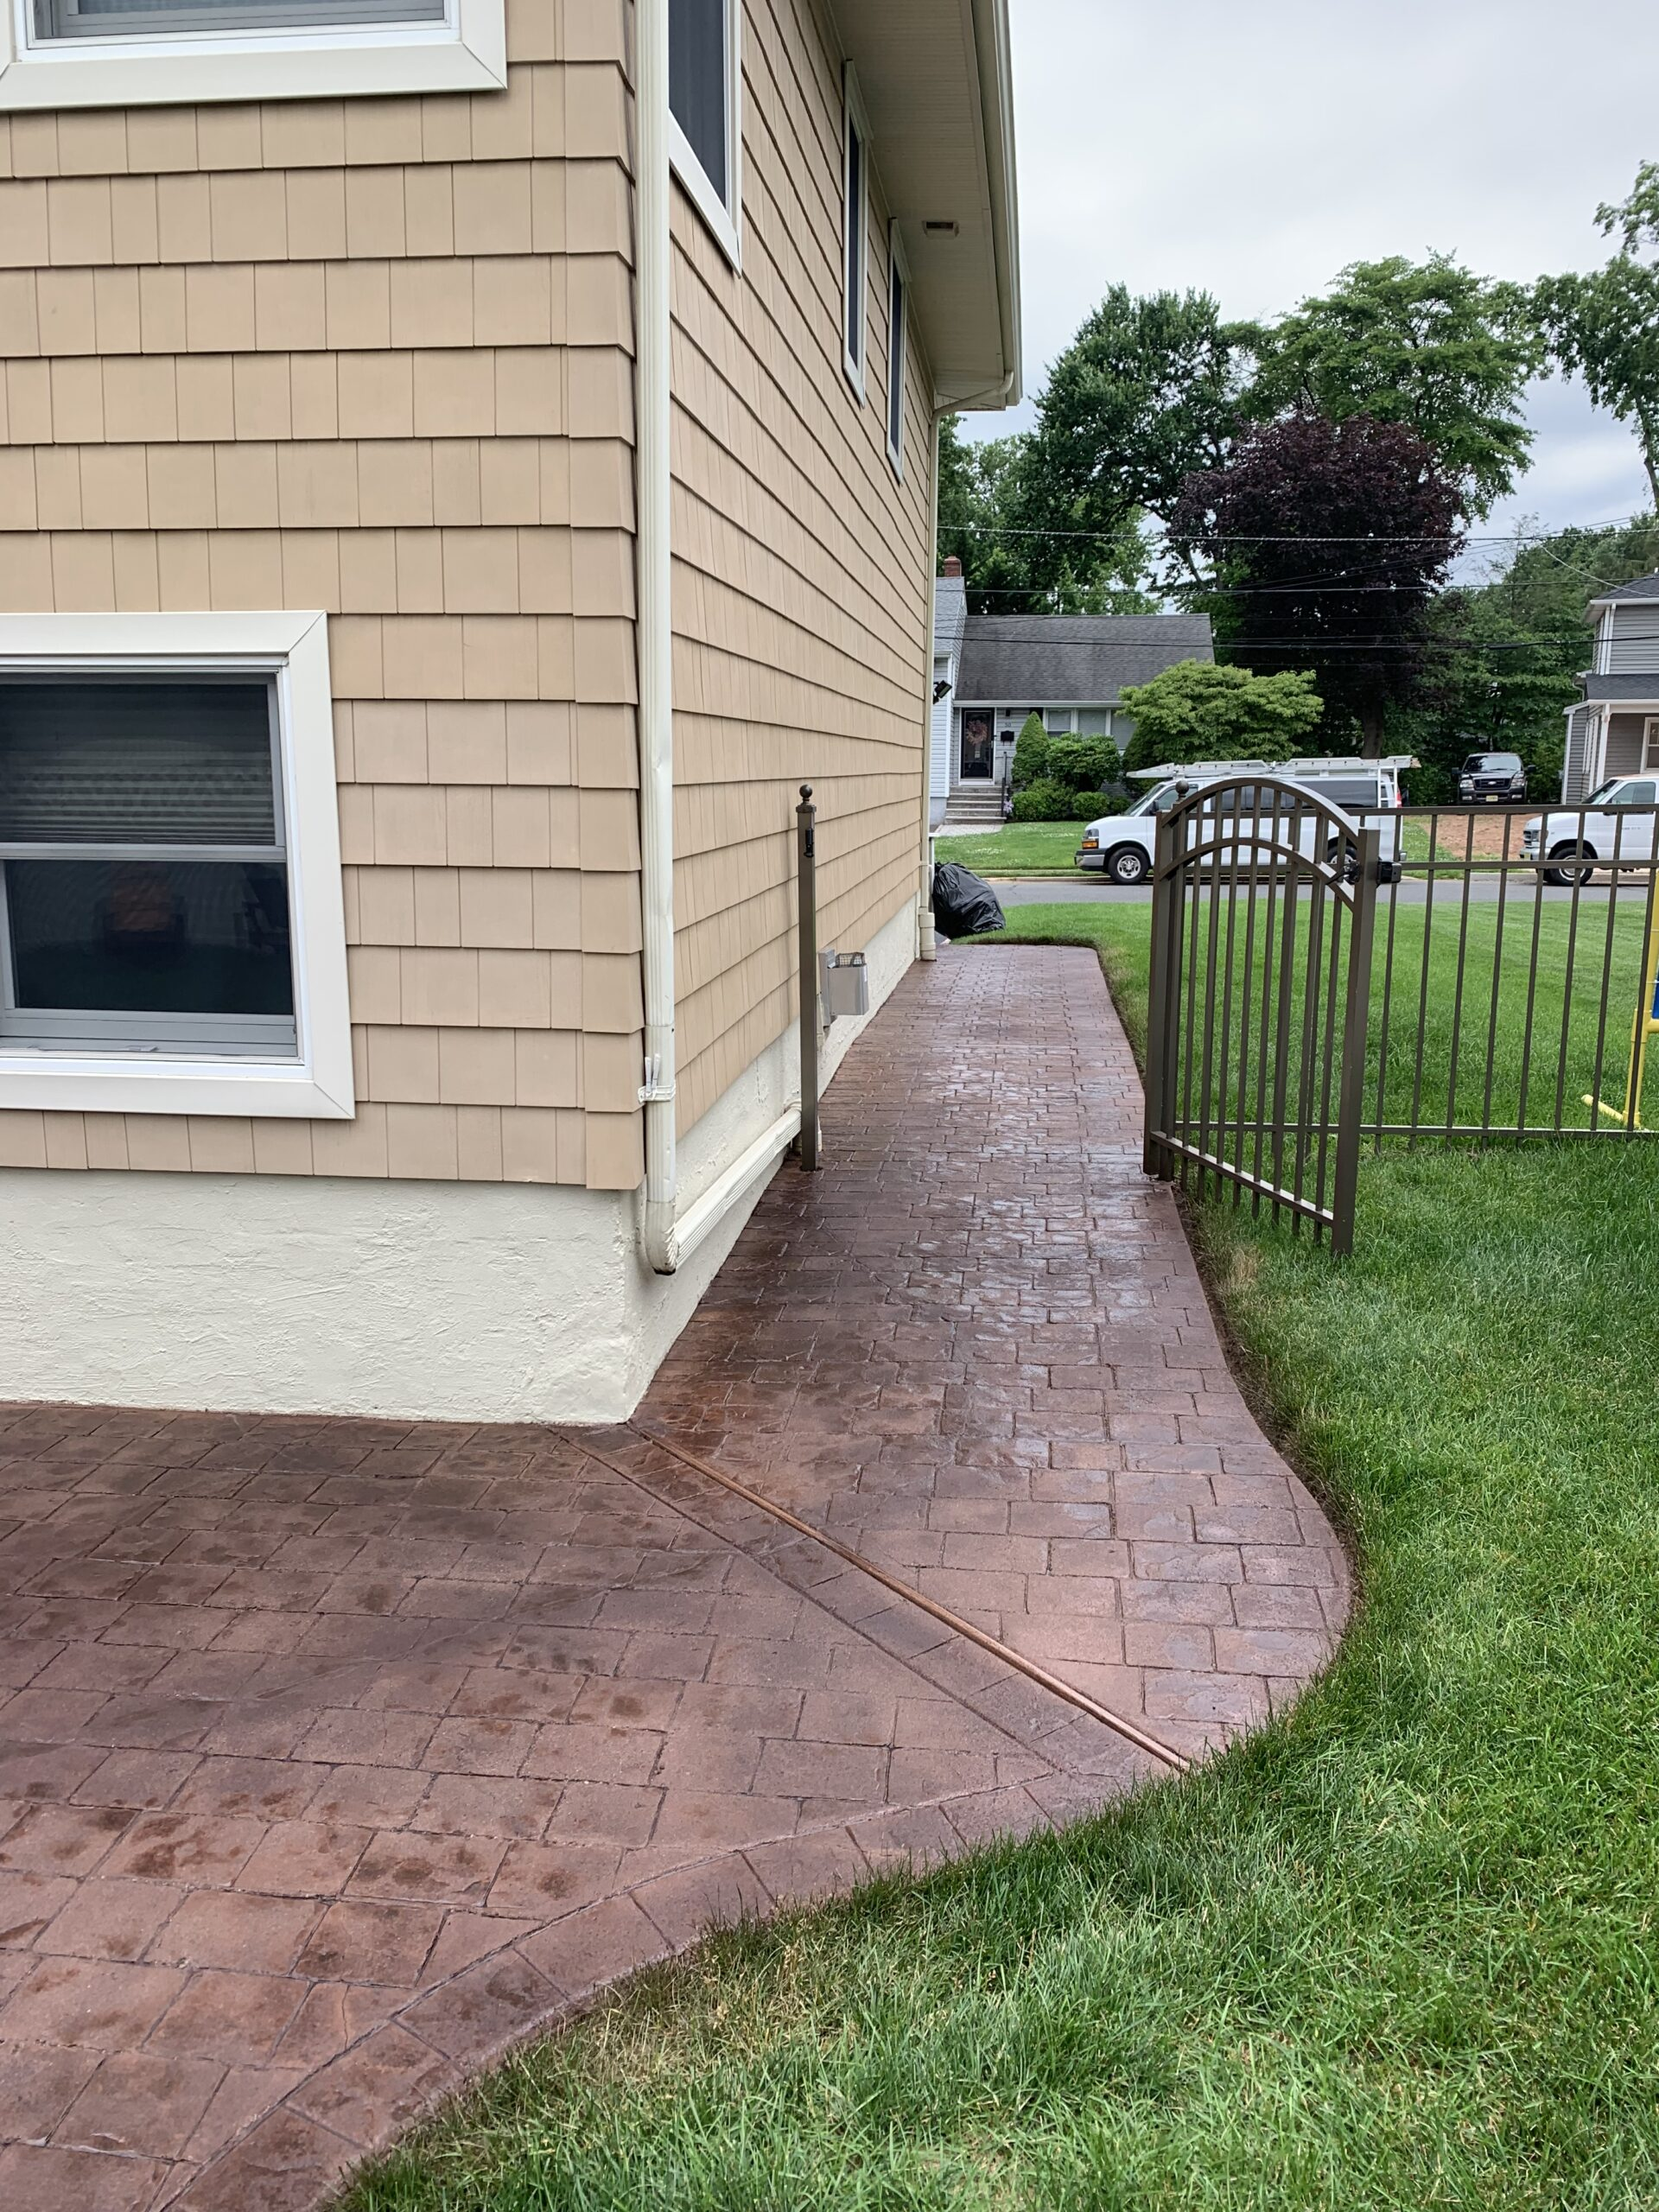 Patched Stamped Concrete Patio After Applying Aztec Brown Antiquing Stain